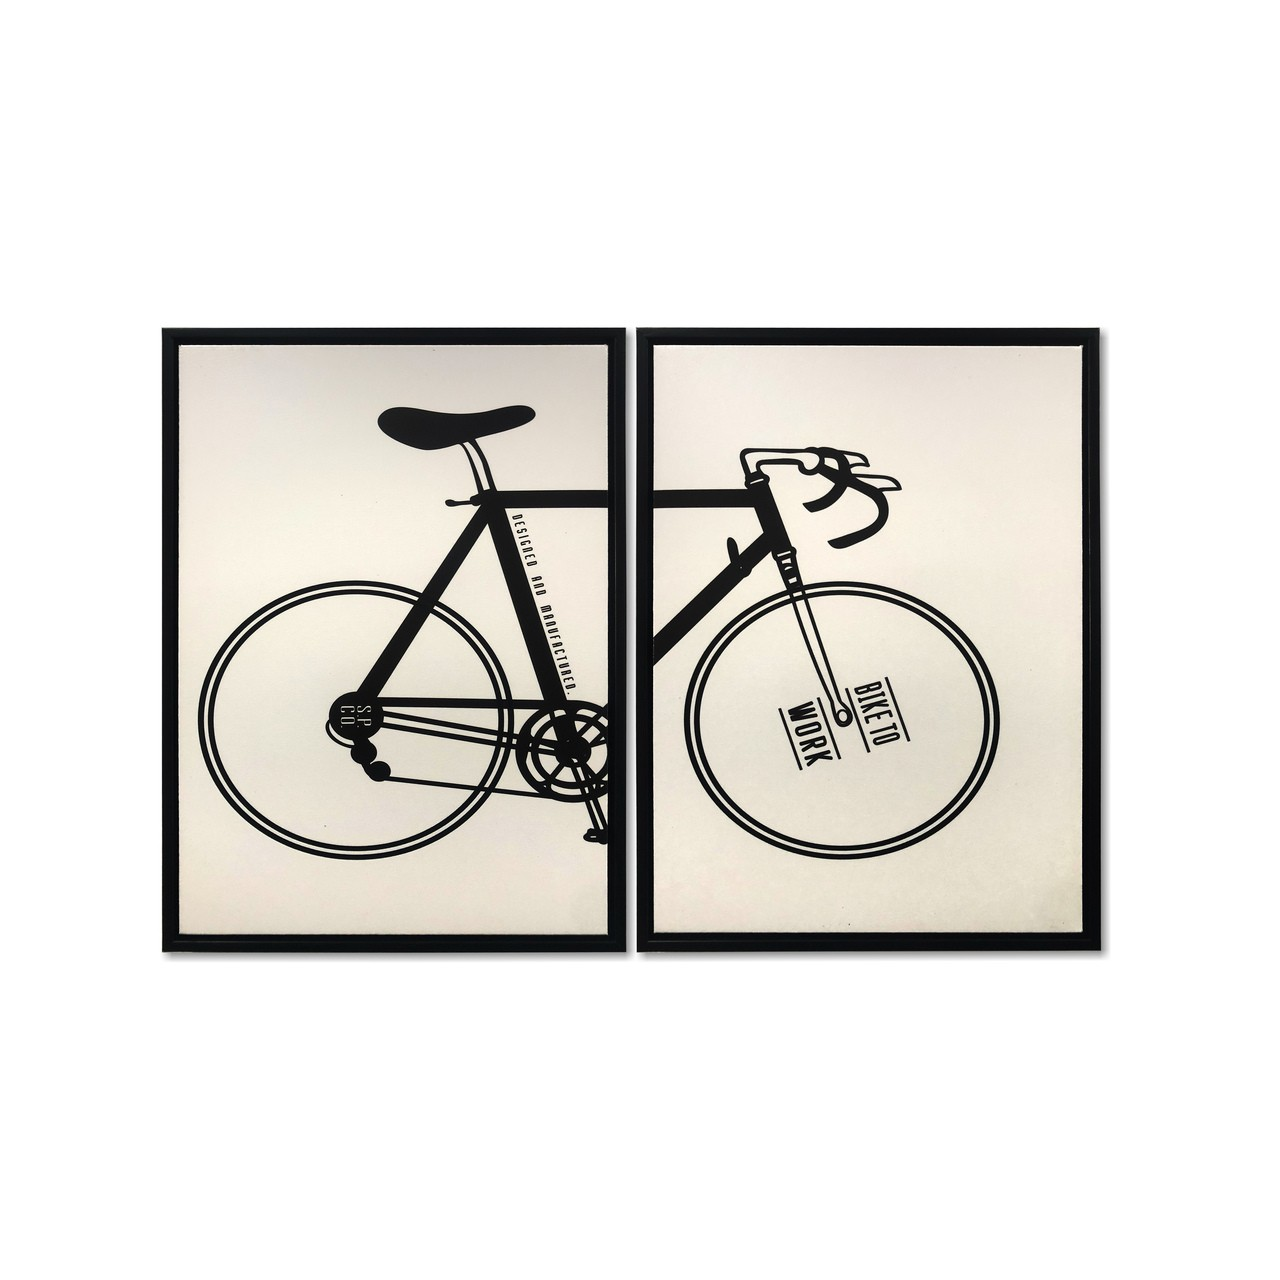 Quadro Decor Kit A bicicleta Desconstruida